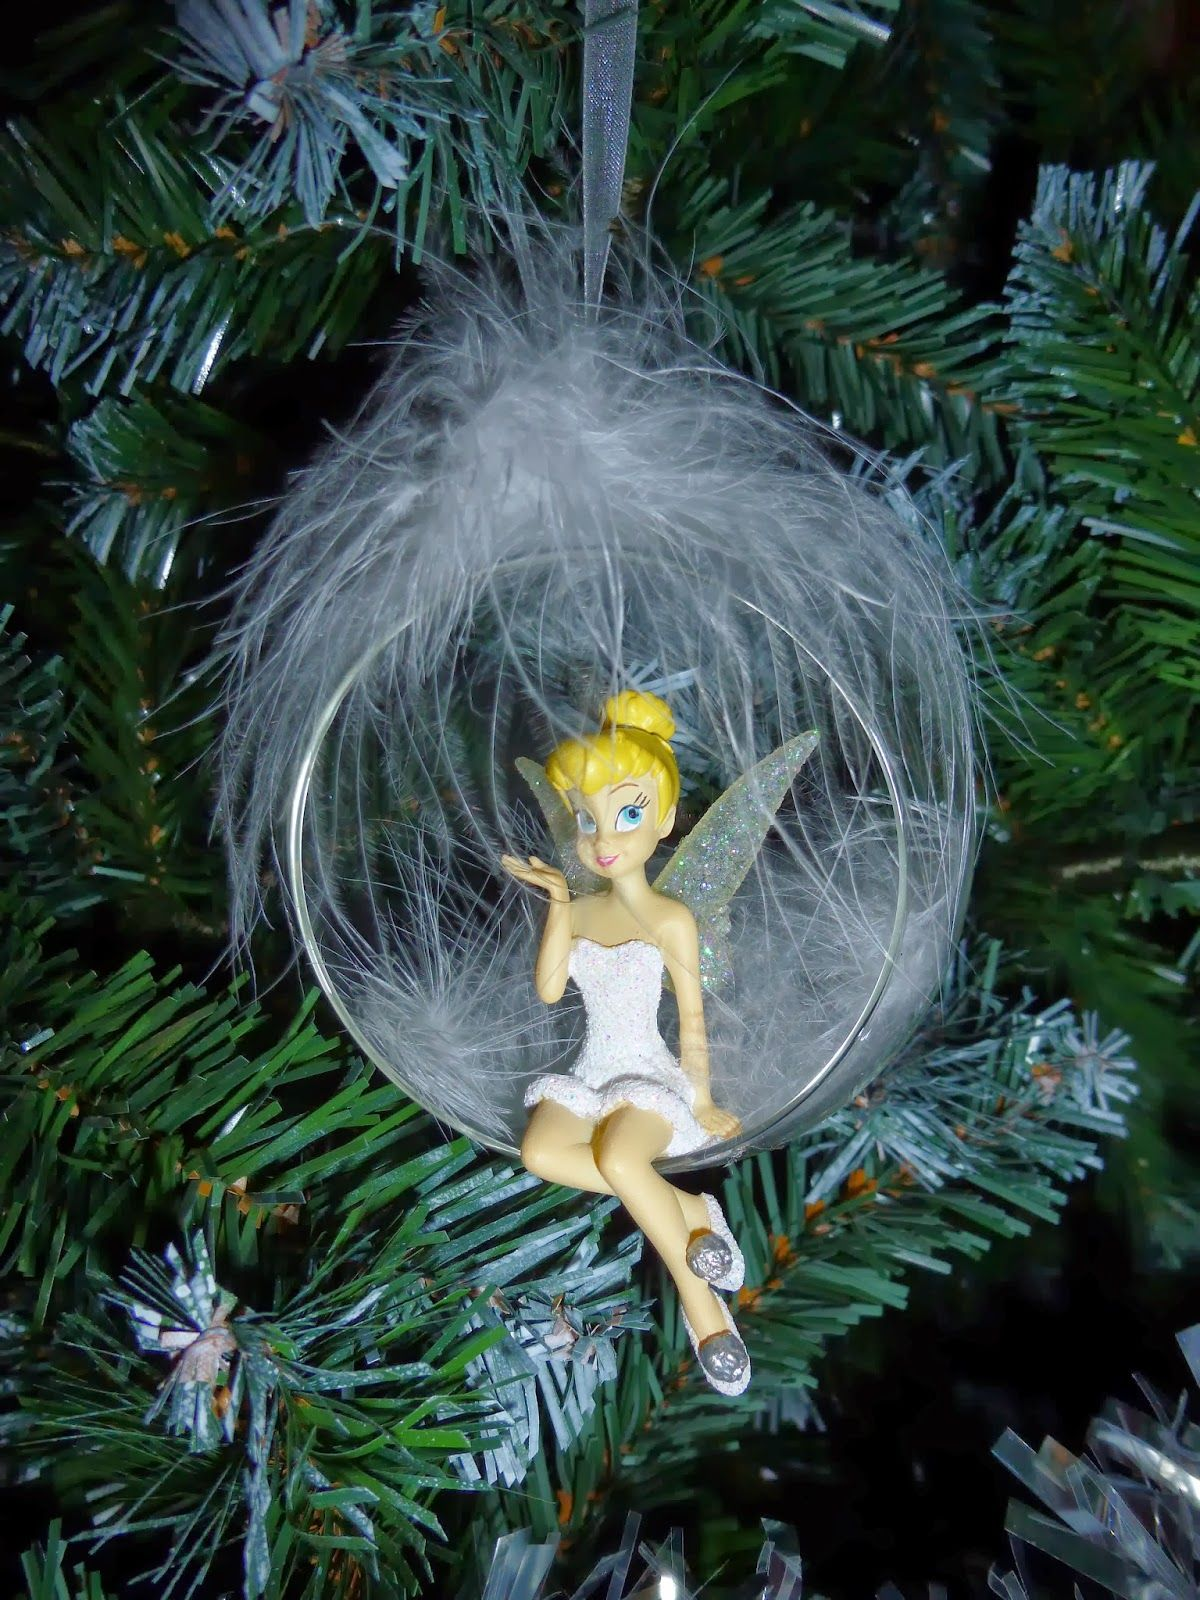 Pin by Nadine GUIMBERTEAU on Christmas Ornaments | Tinkerbell